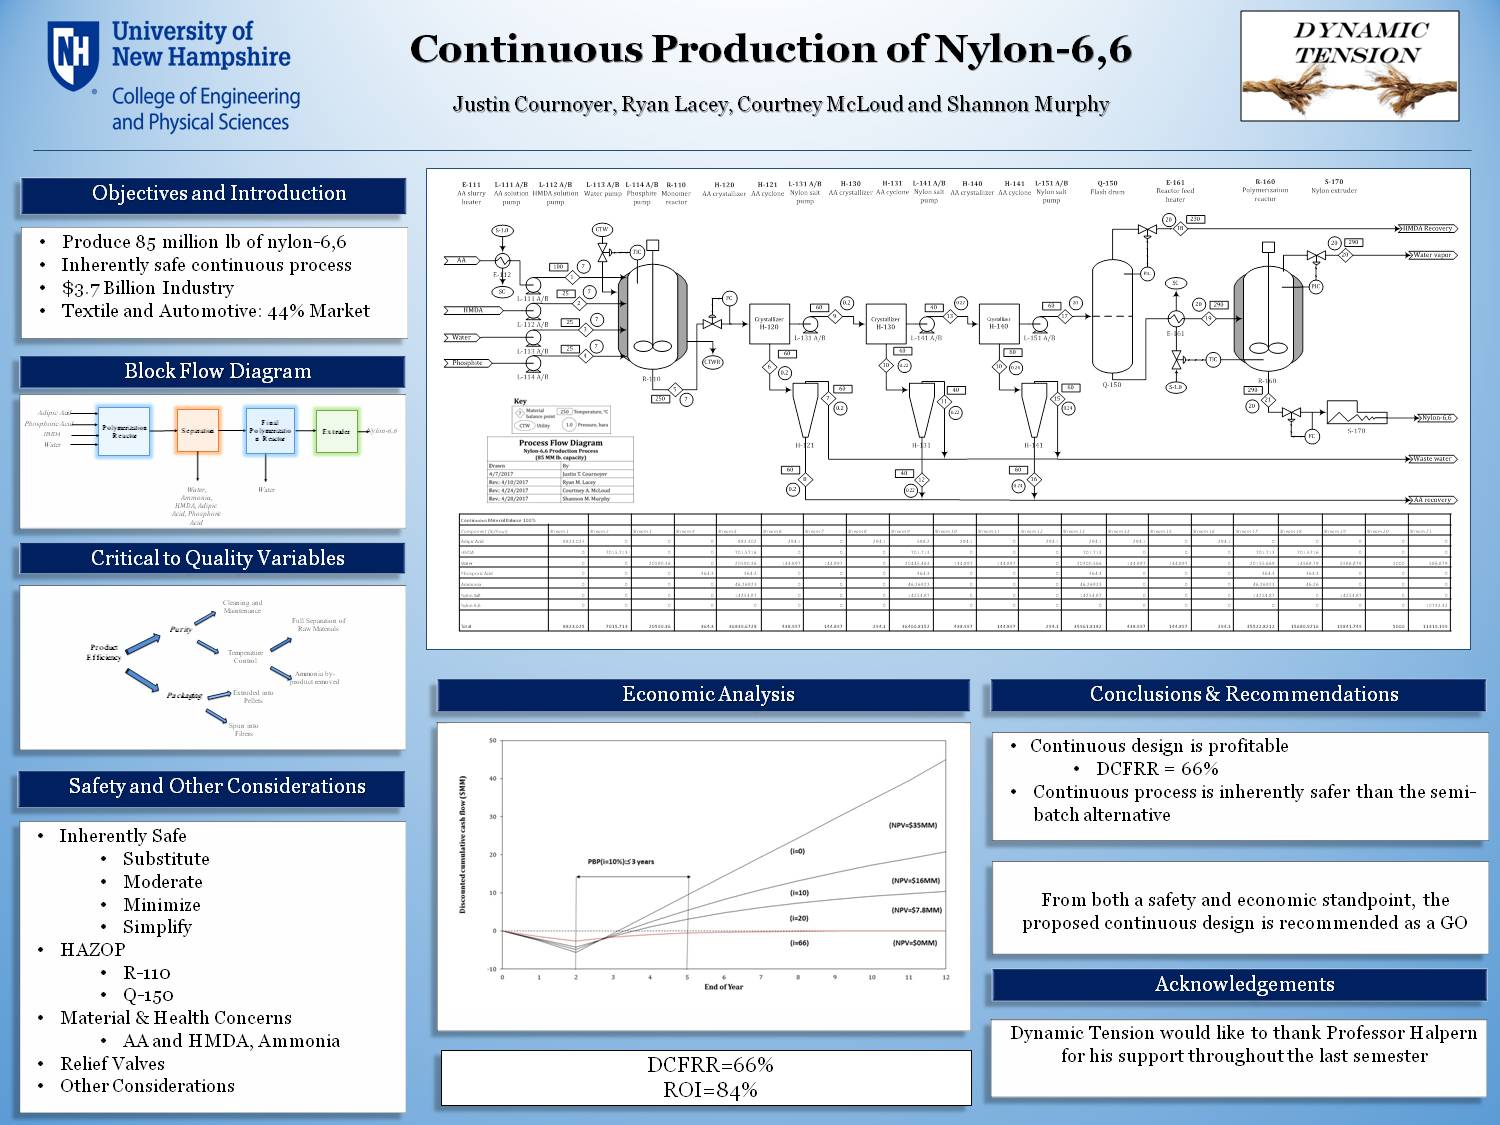 Dynamic Tension Continuous Production Of Nylon-6,6 by jtc10